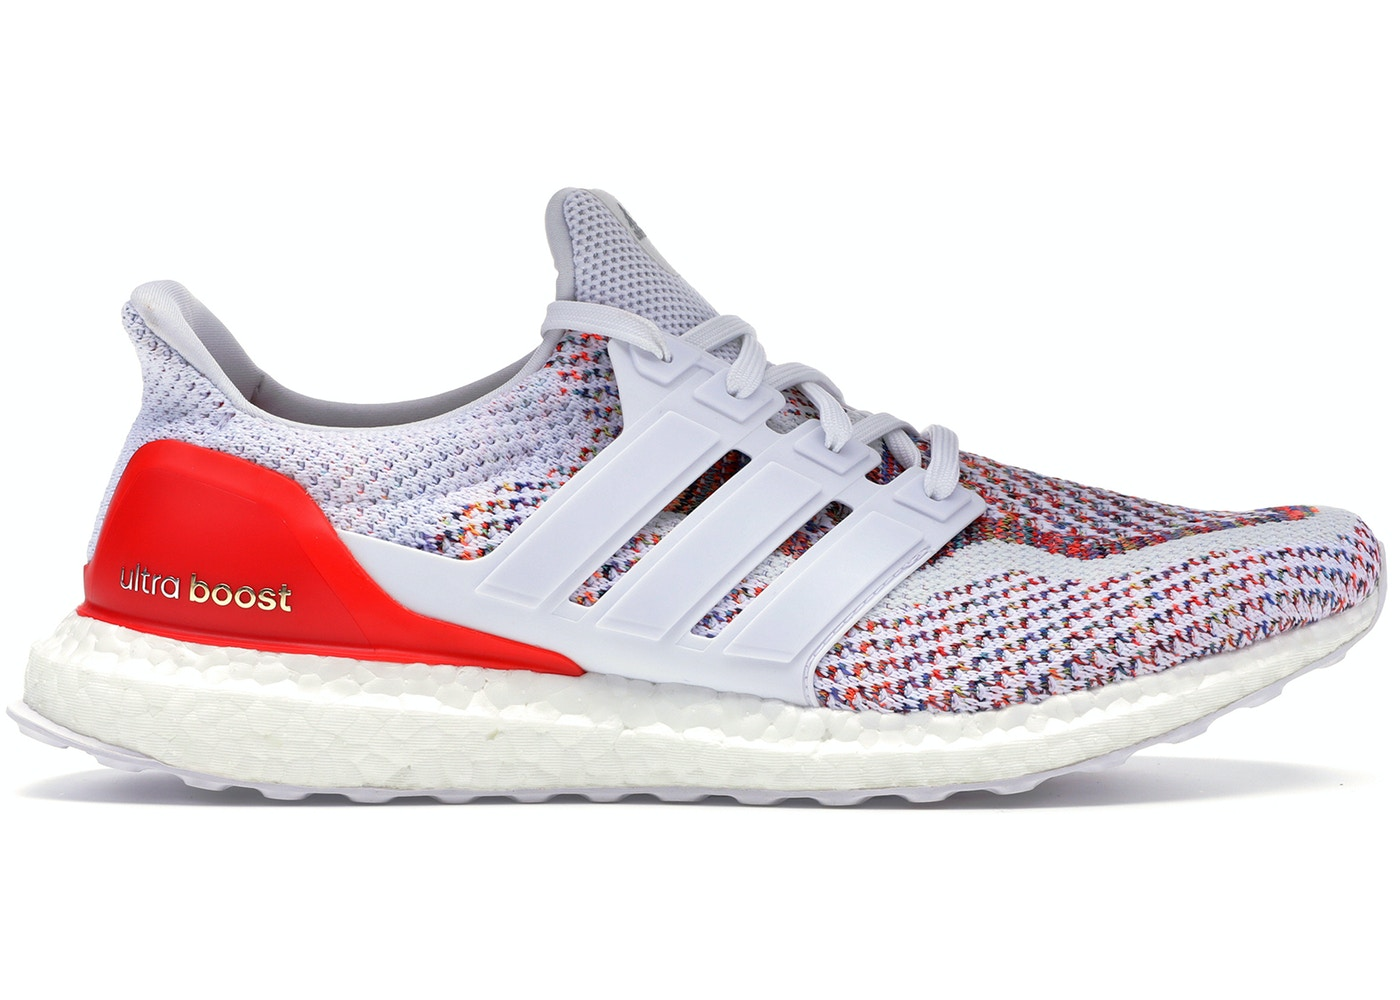 6a49264c adidas Ultra Boost 2.0 Multi-Color - BB3911